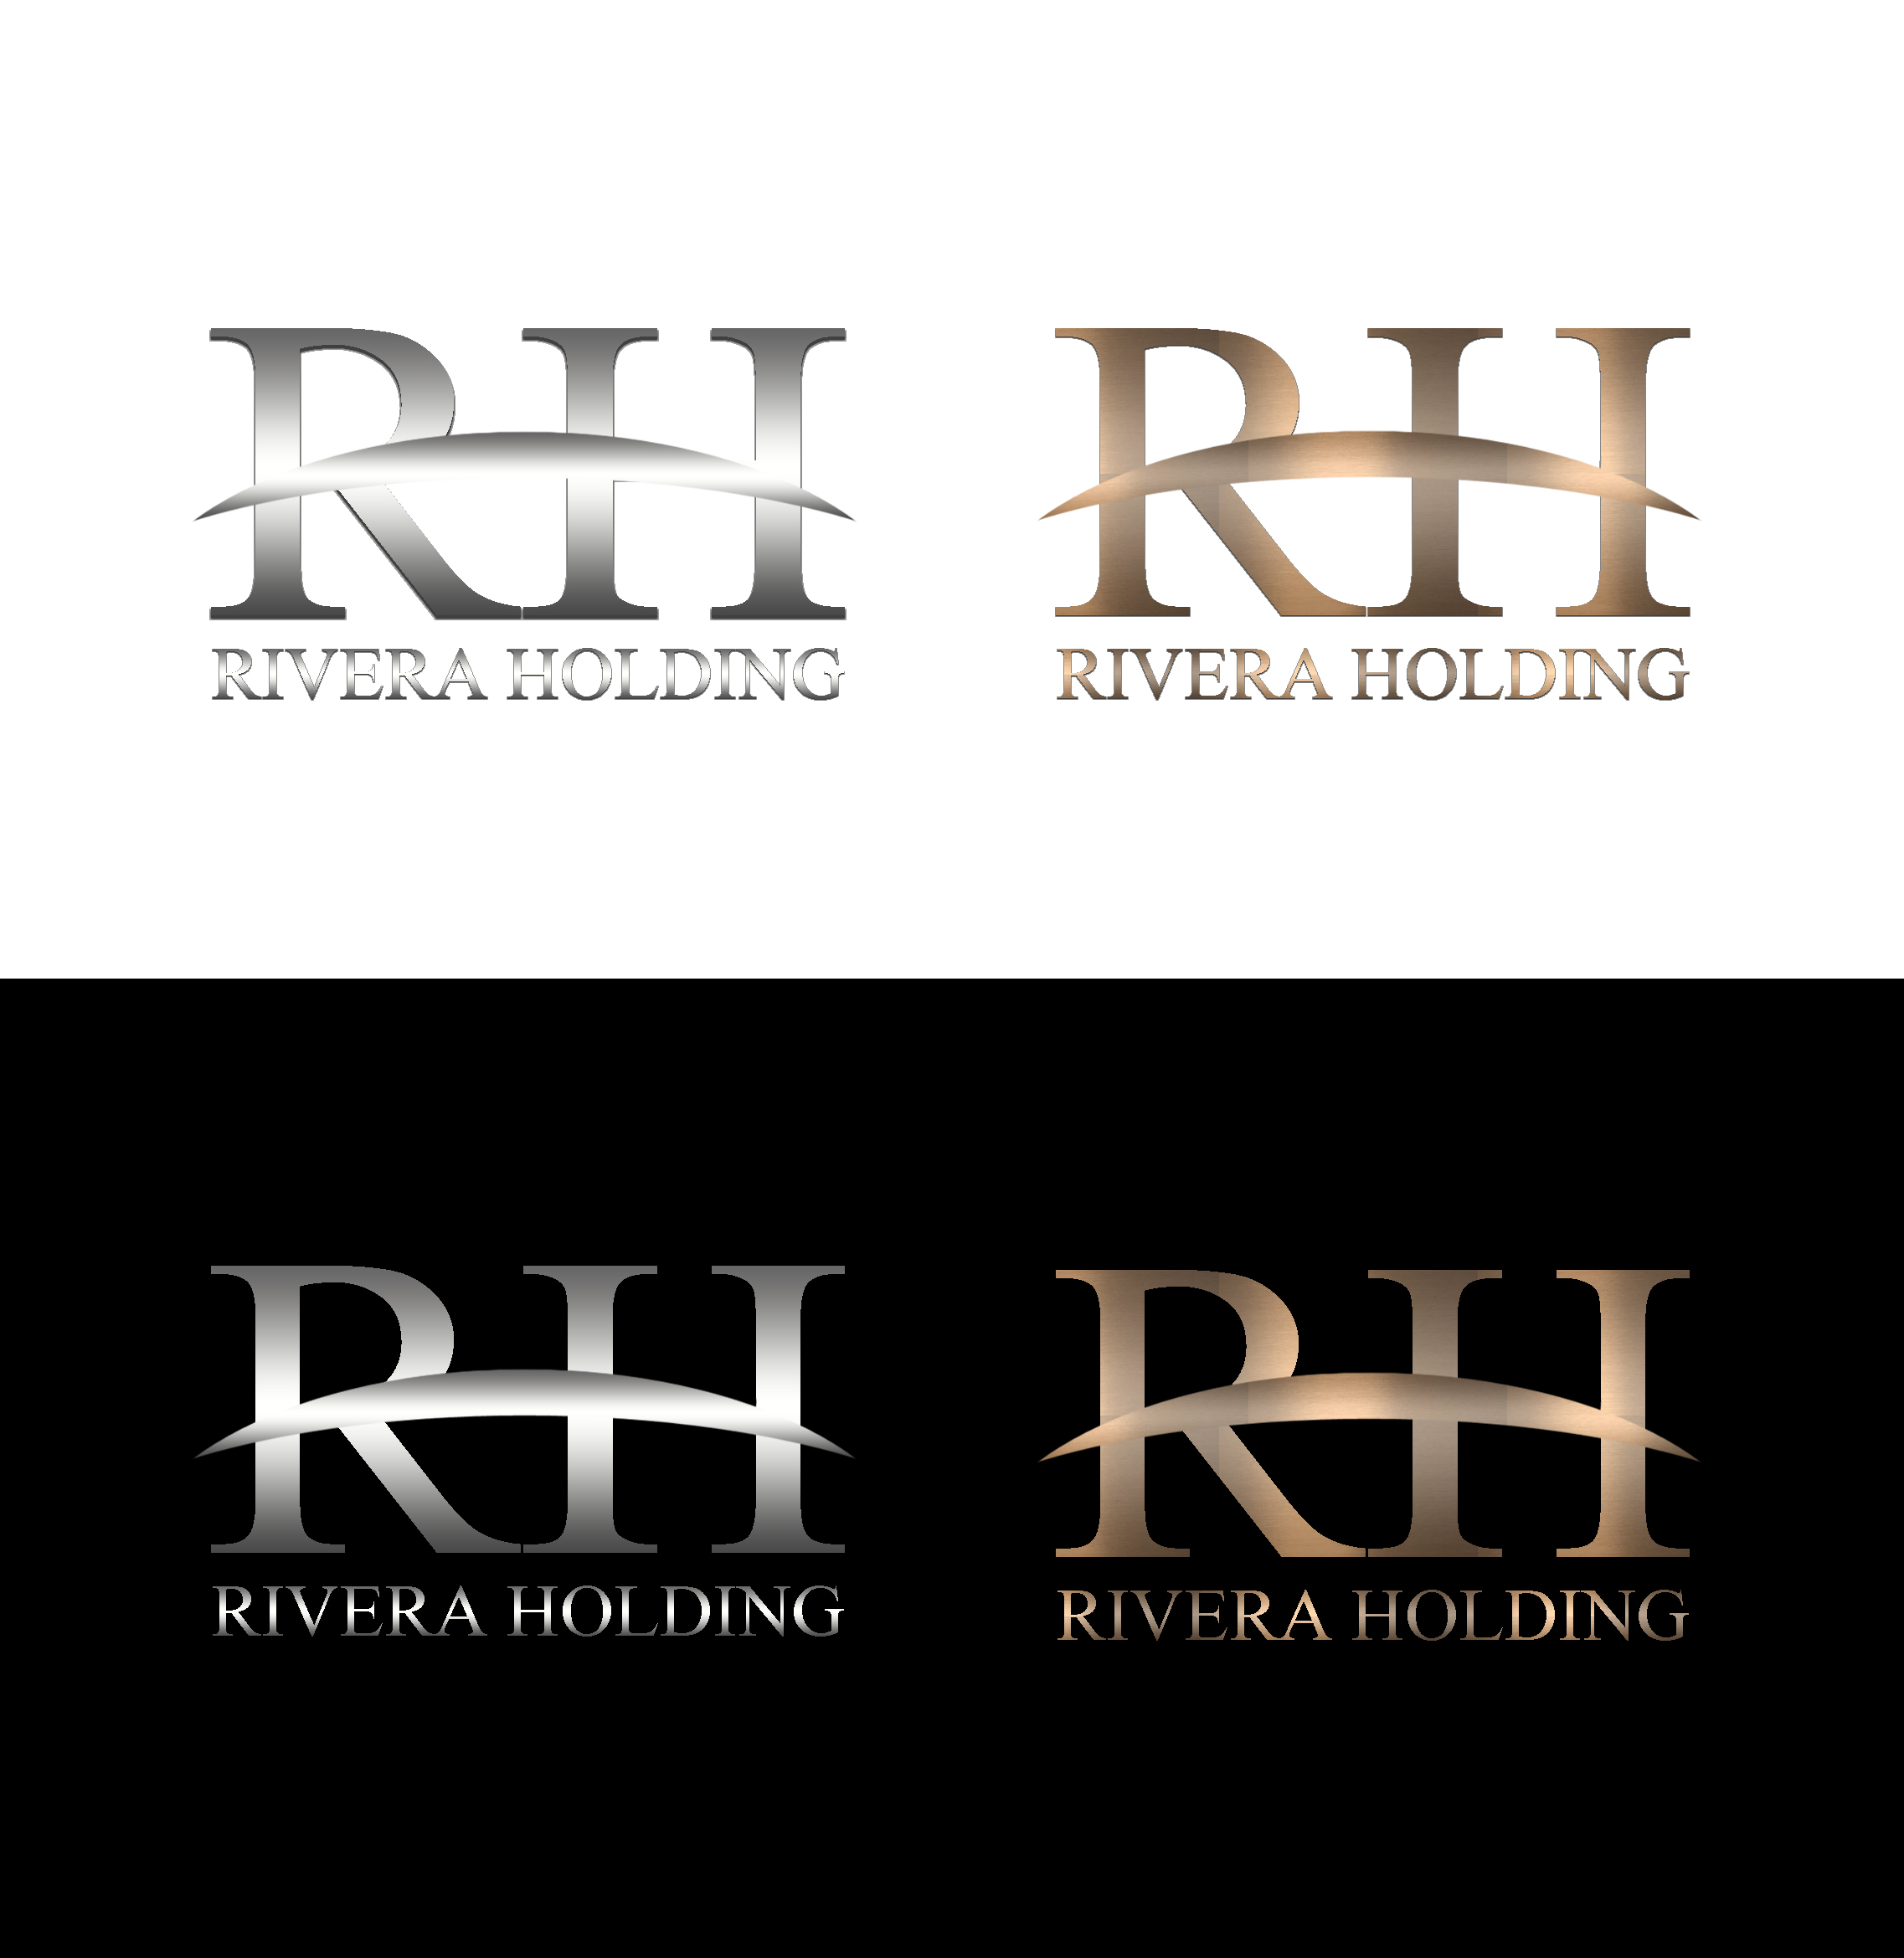 Logo Design by JSDESIGNGROUP - Entry No. 69 in the Logo Design Contest RIVERA HOLDING Logo Design.